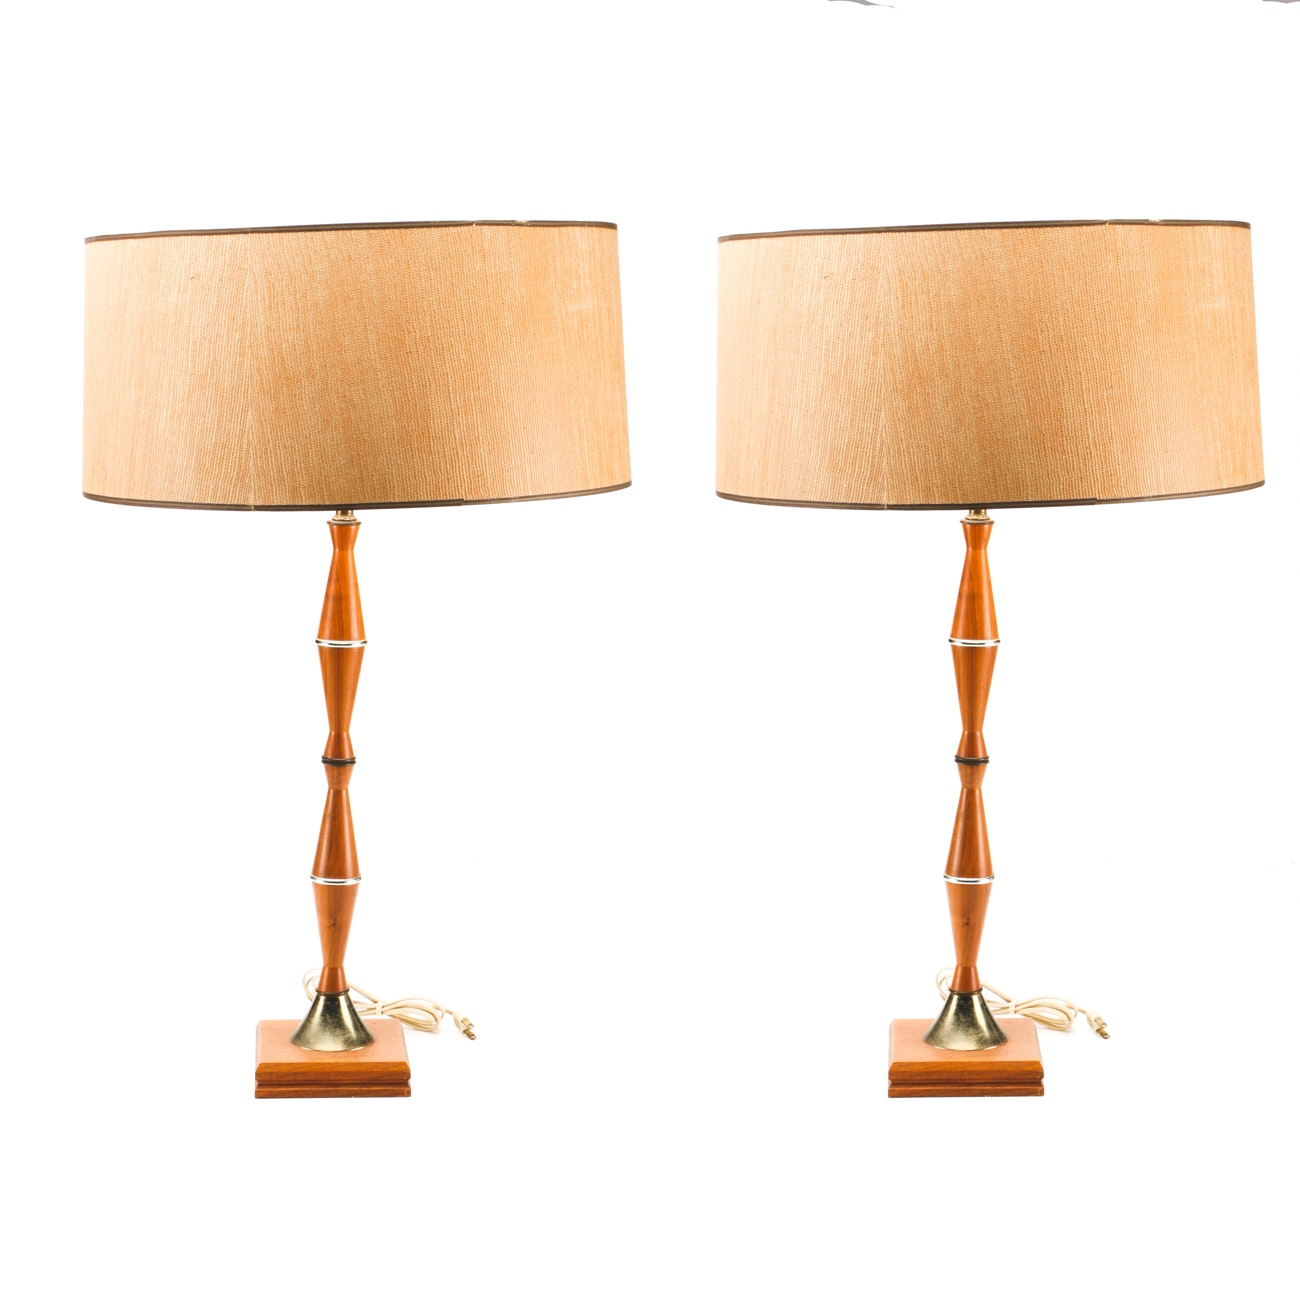 Pair of Mid Century Modern Table Lamps